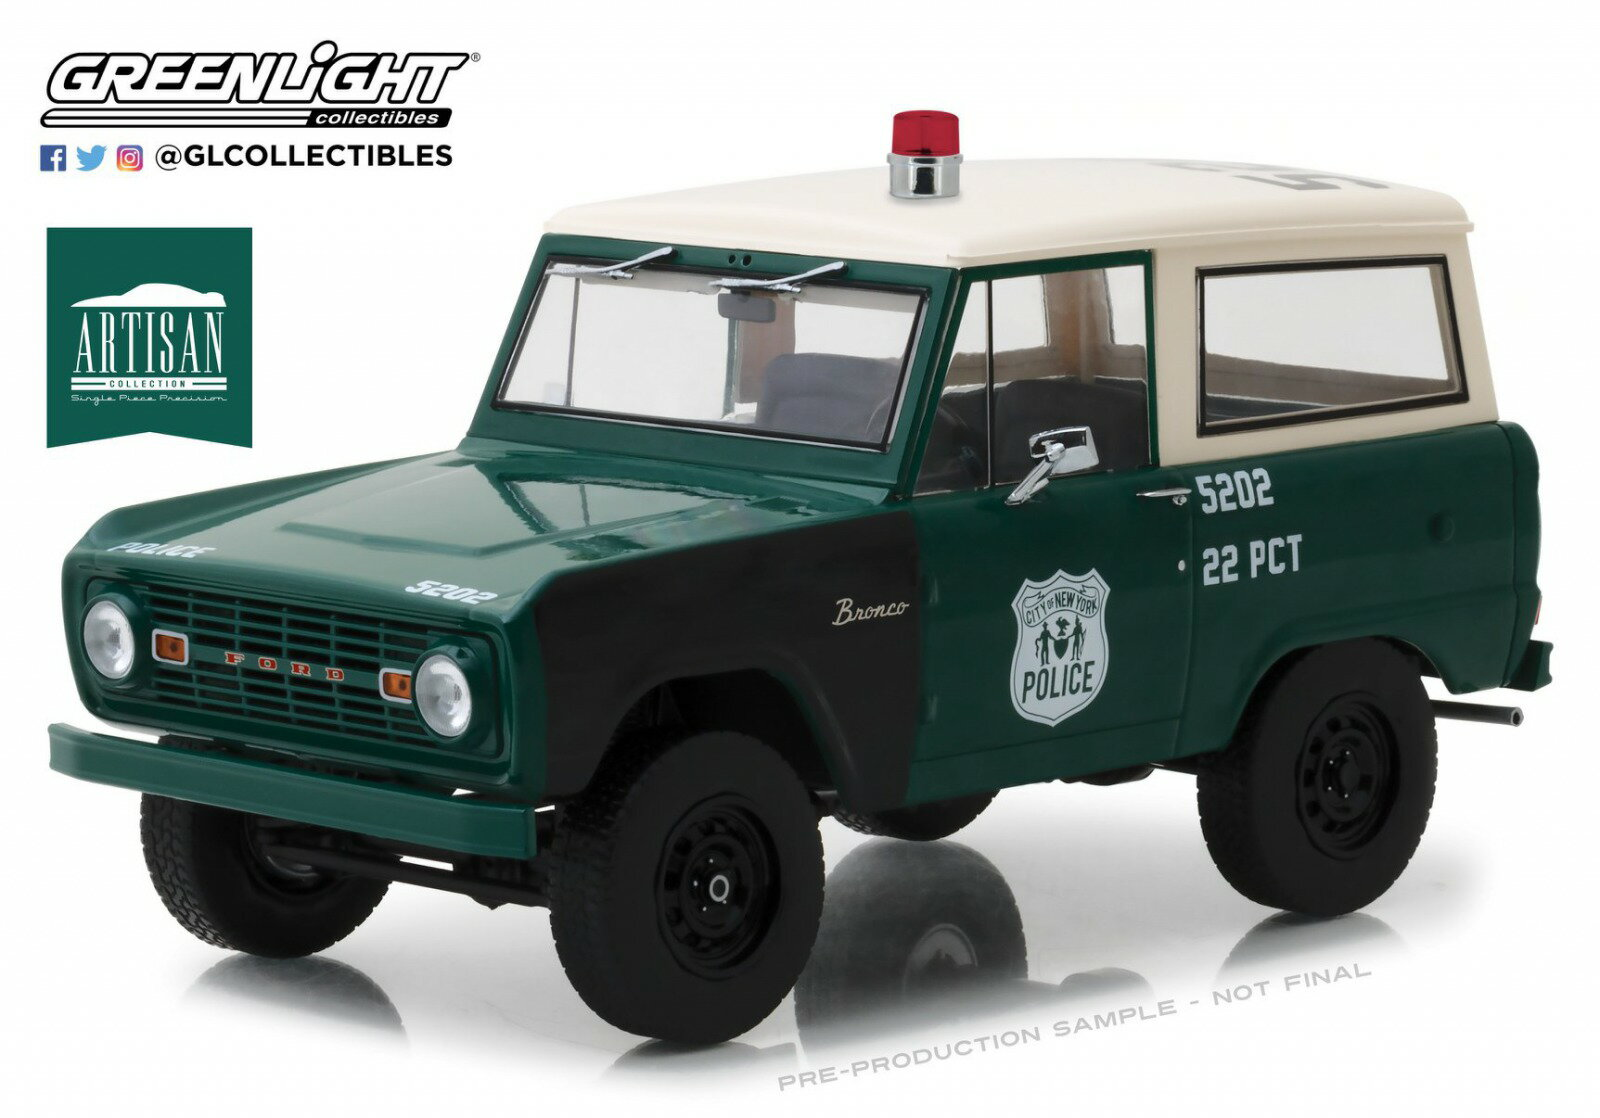 Greenlight 1:18 1967年モデル フォード ブロンコ ニューヨーク市ポリス NYPD1967 Ford Bronco New York City Police Department (NYPD) Artisan Collection